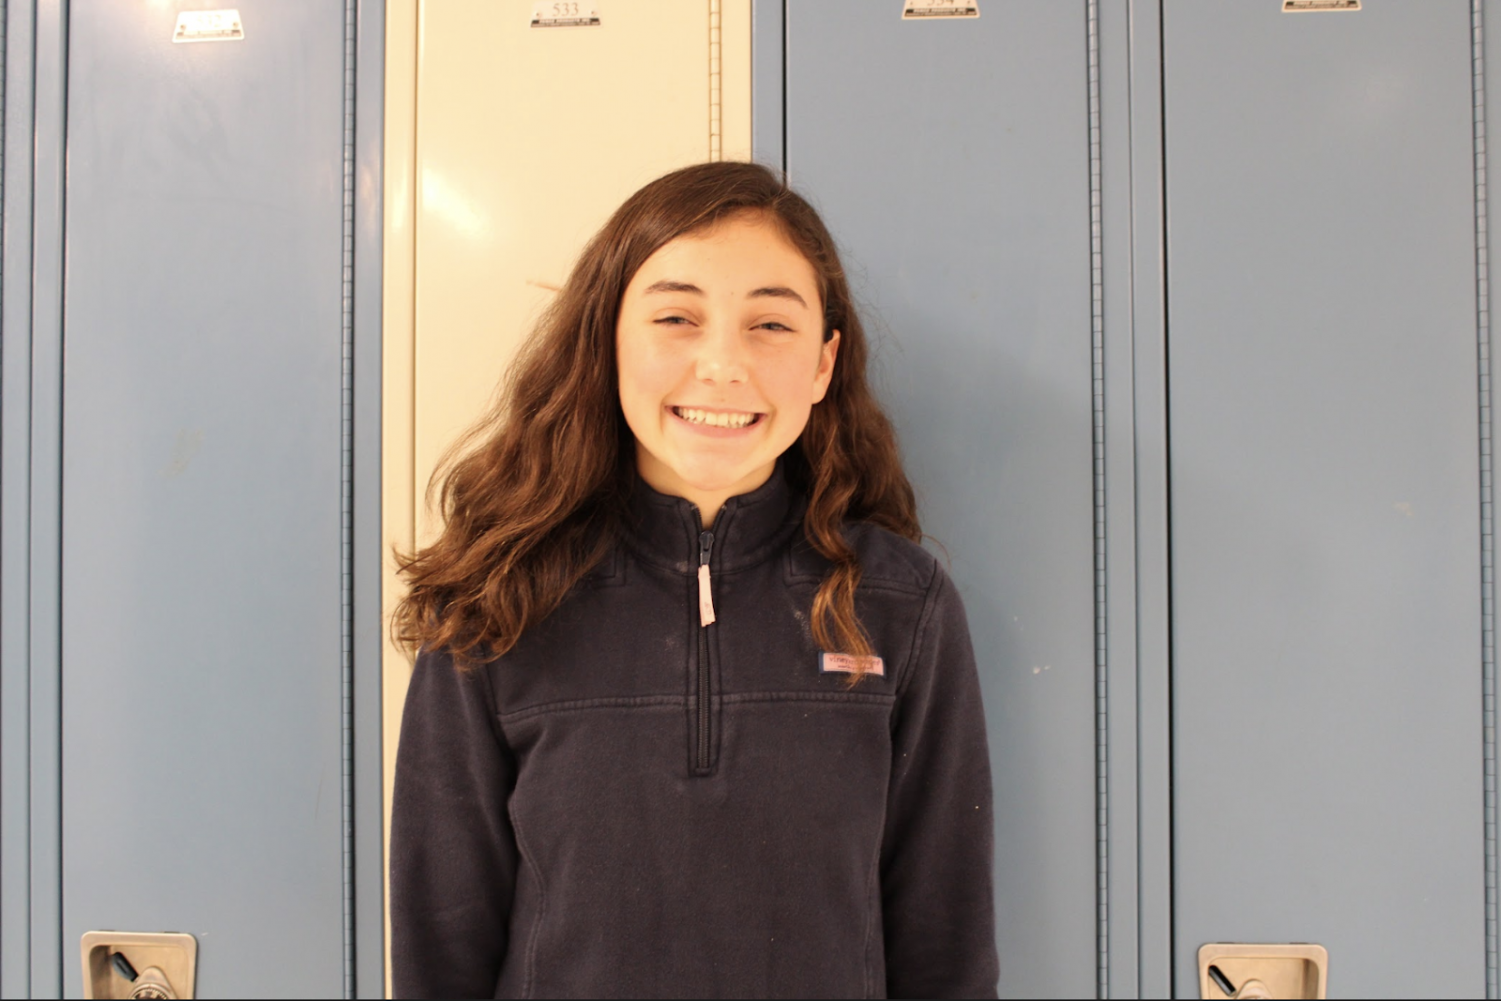 Elle Vail '23 is a published author at the age of 14. She wrote two books,